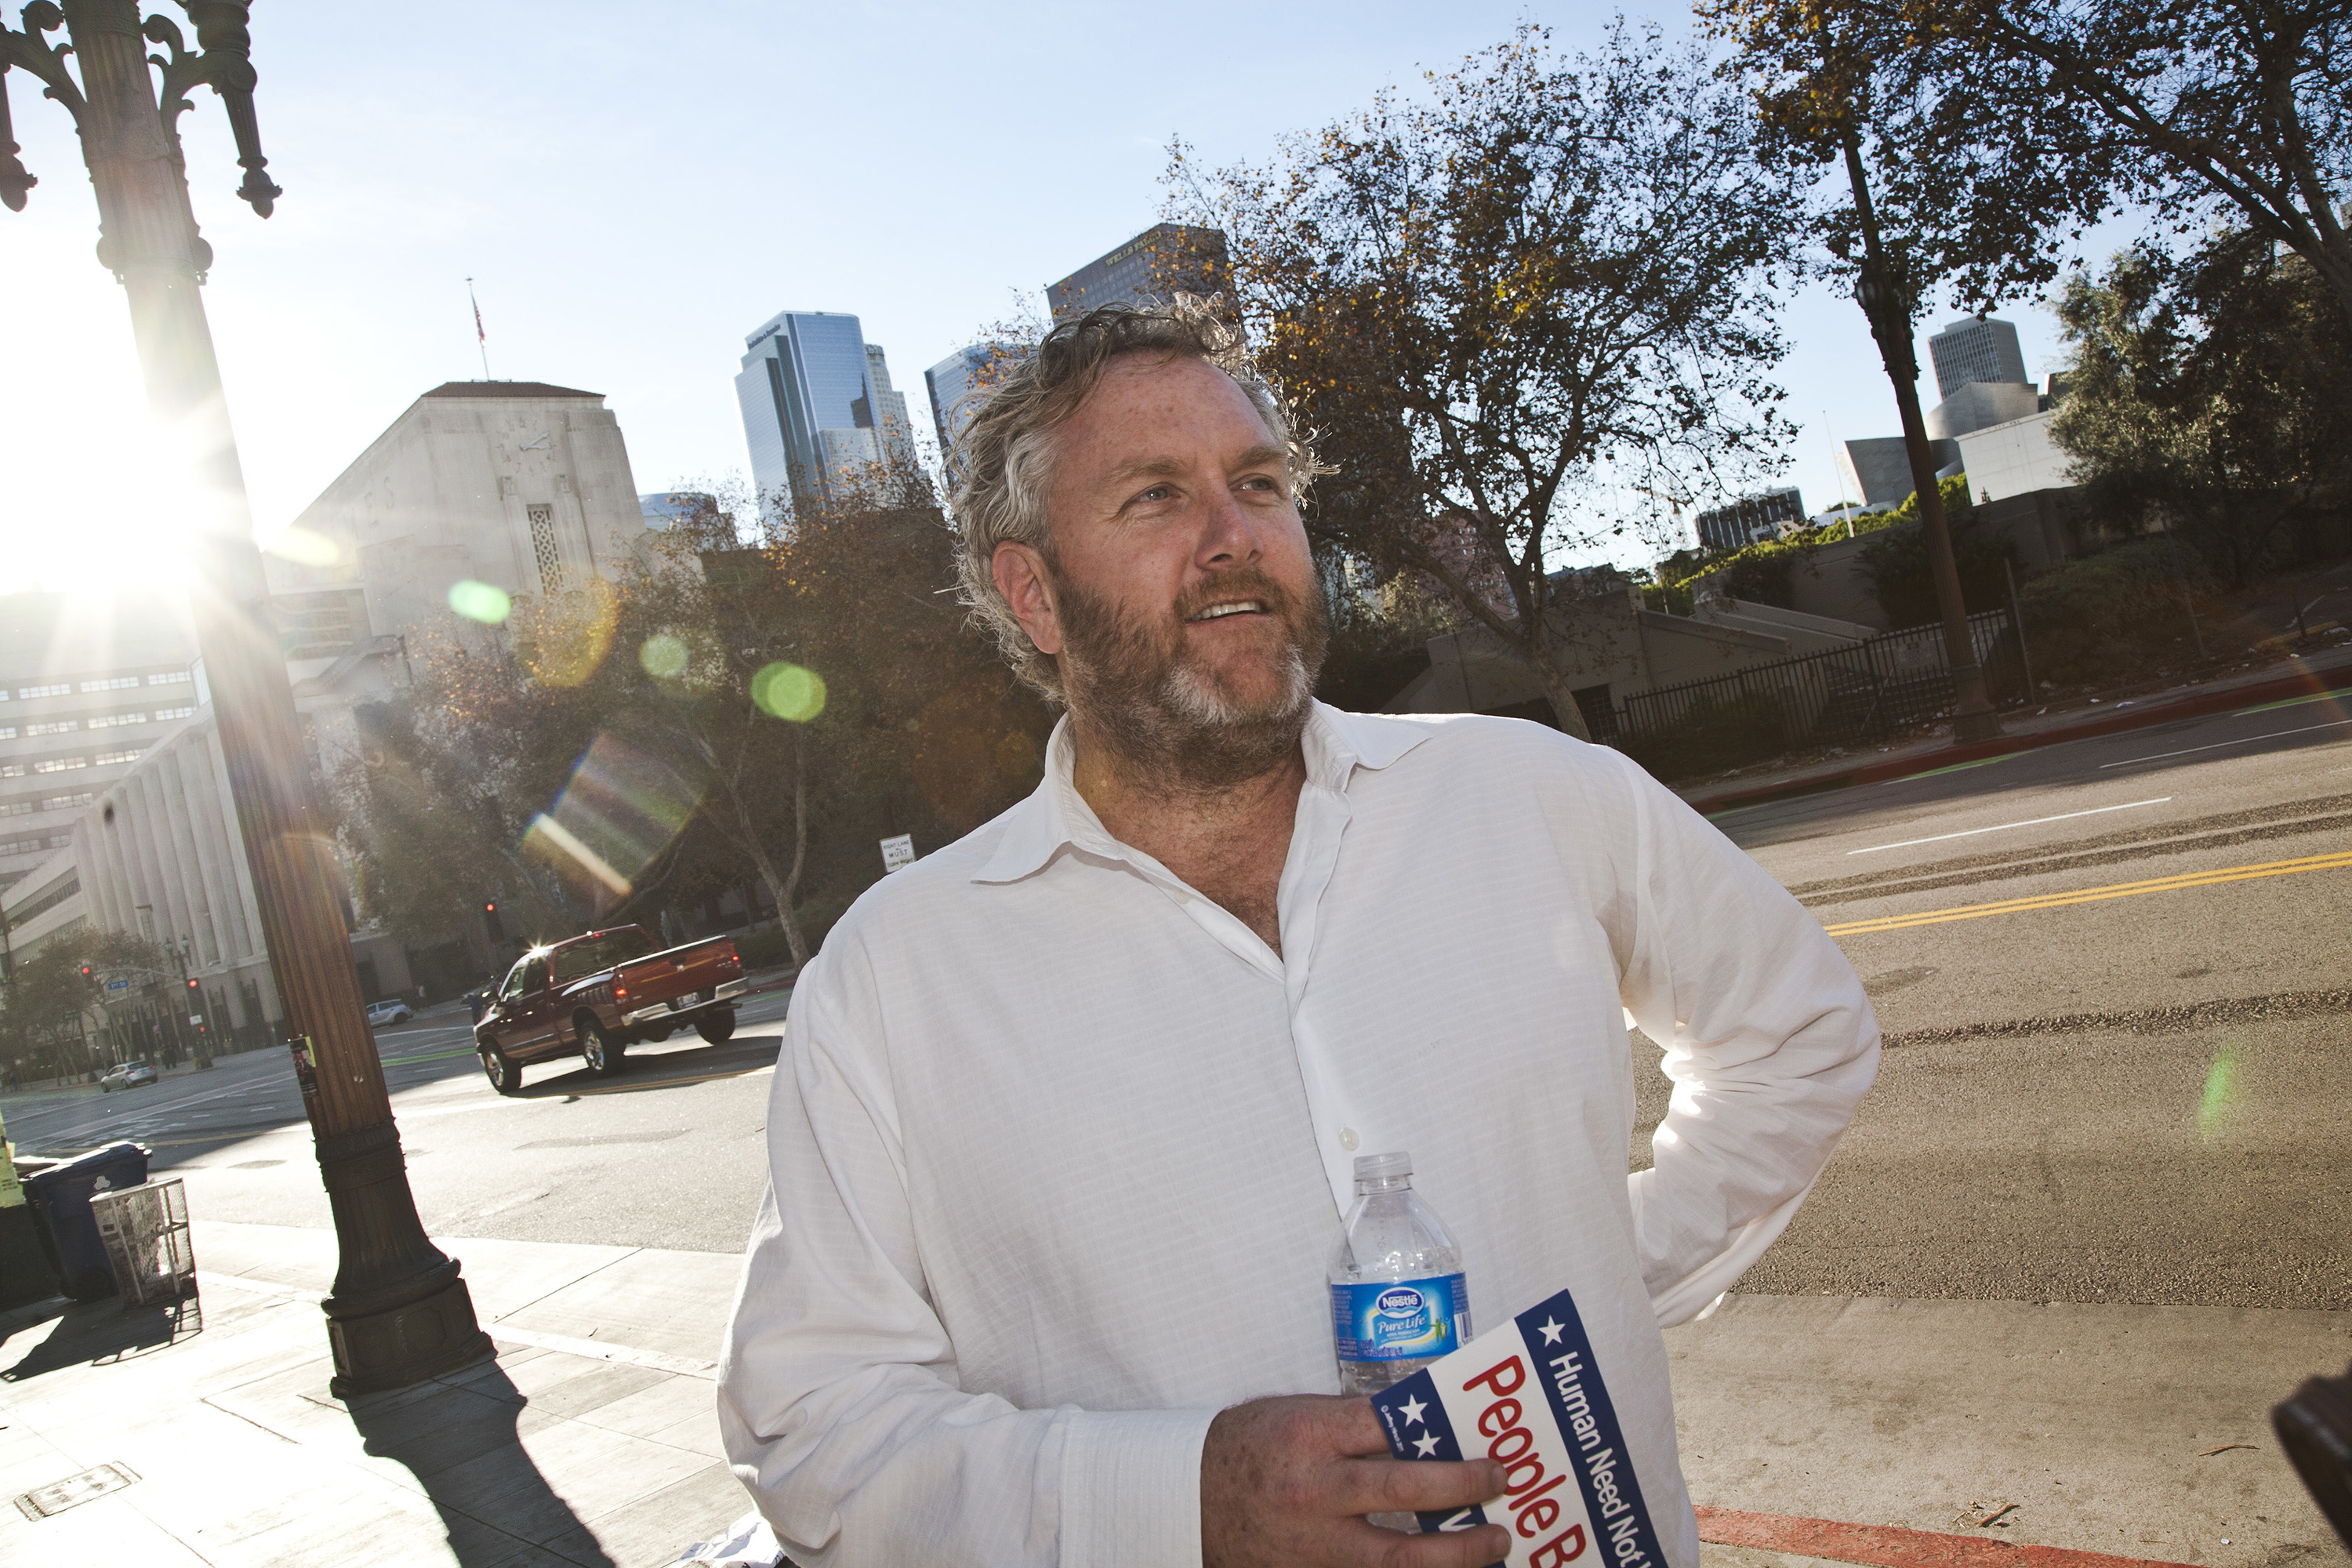 Conservative blogger Andrew Breitbart at the Occupy L.A. site. He was interviewing occupiers for his blog and TV program. (Photo by Ted Soqui/Corbis via Getty Images)